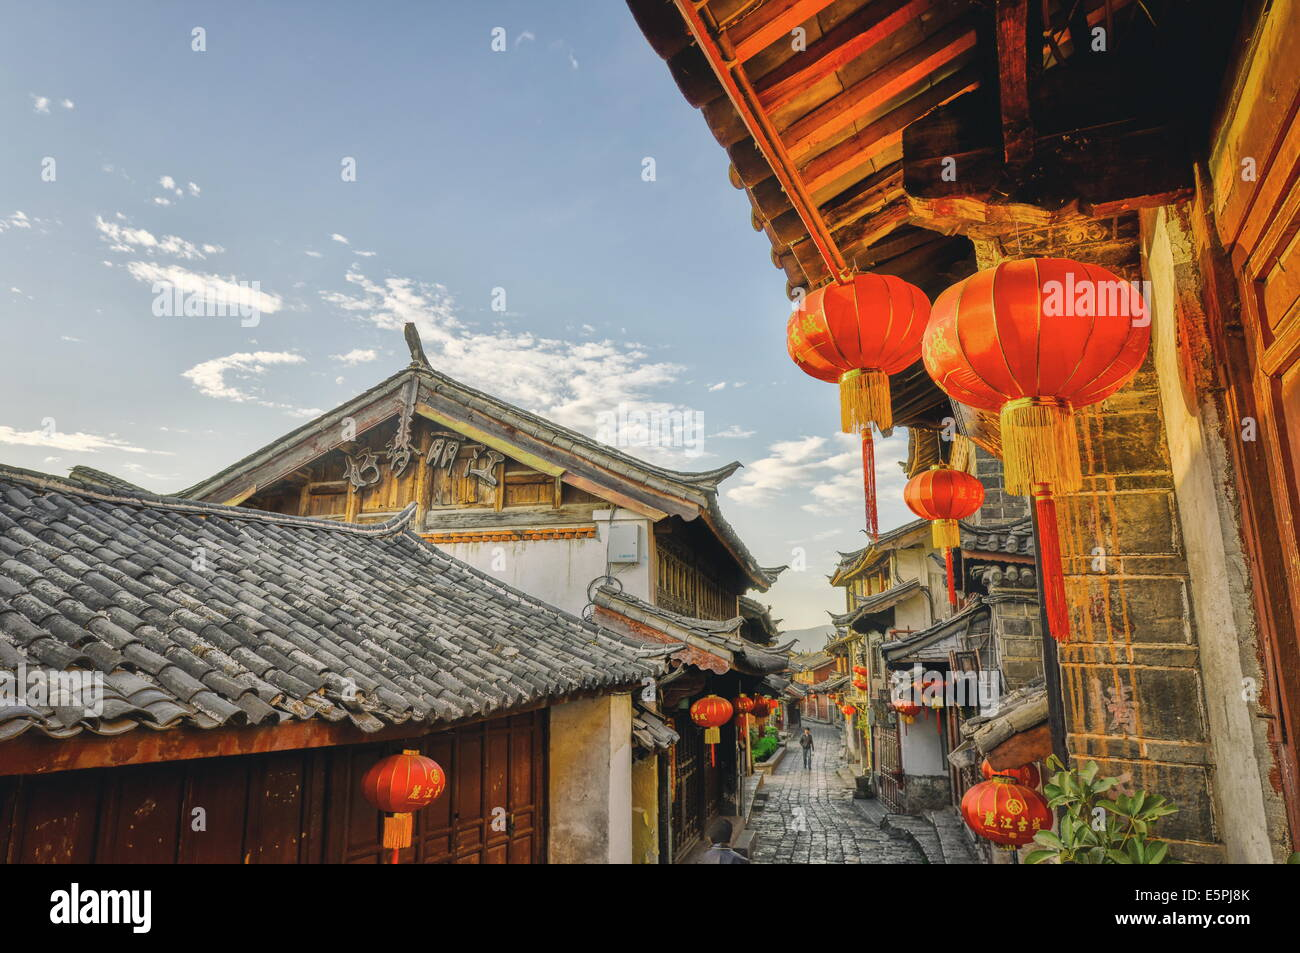 In the mornings, Lijiang is mostly sleeping and the stores are still closed, Lijiang, Yunnan, China, Asia - Stock Image